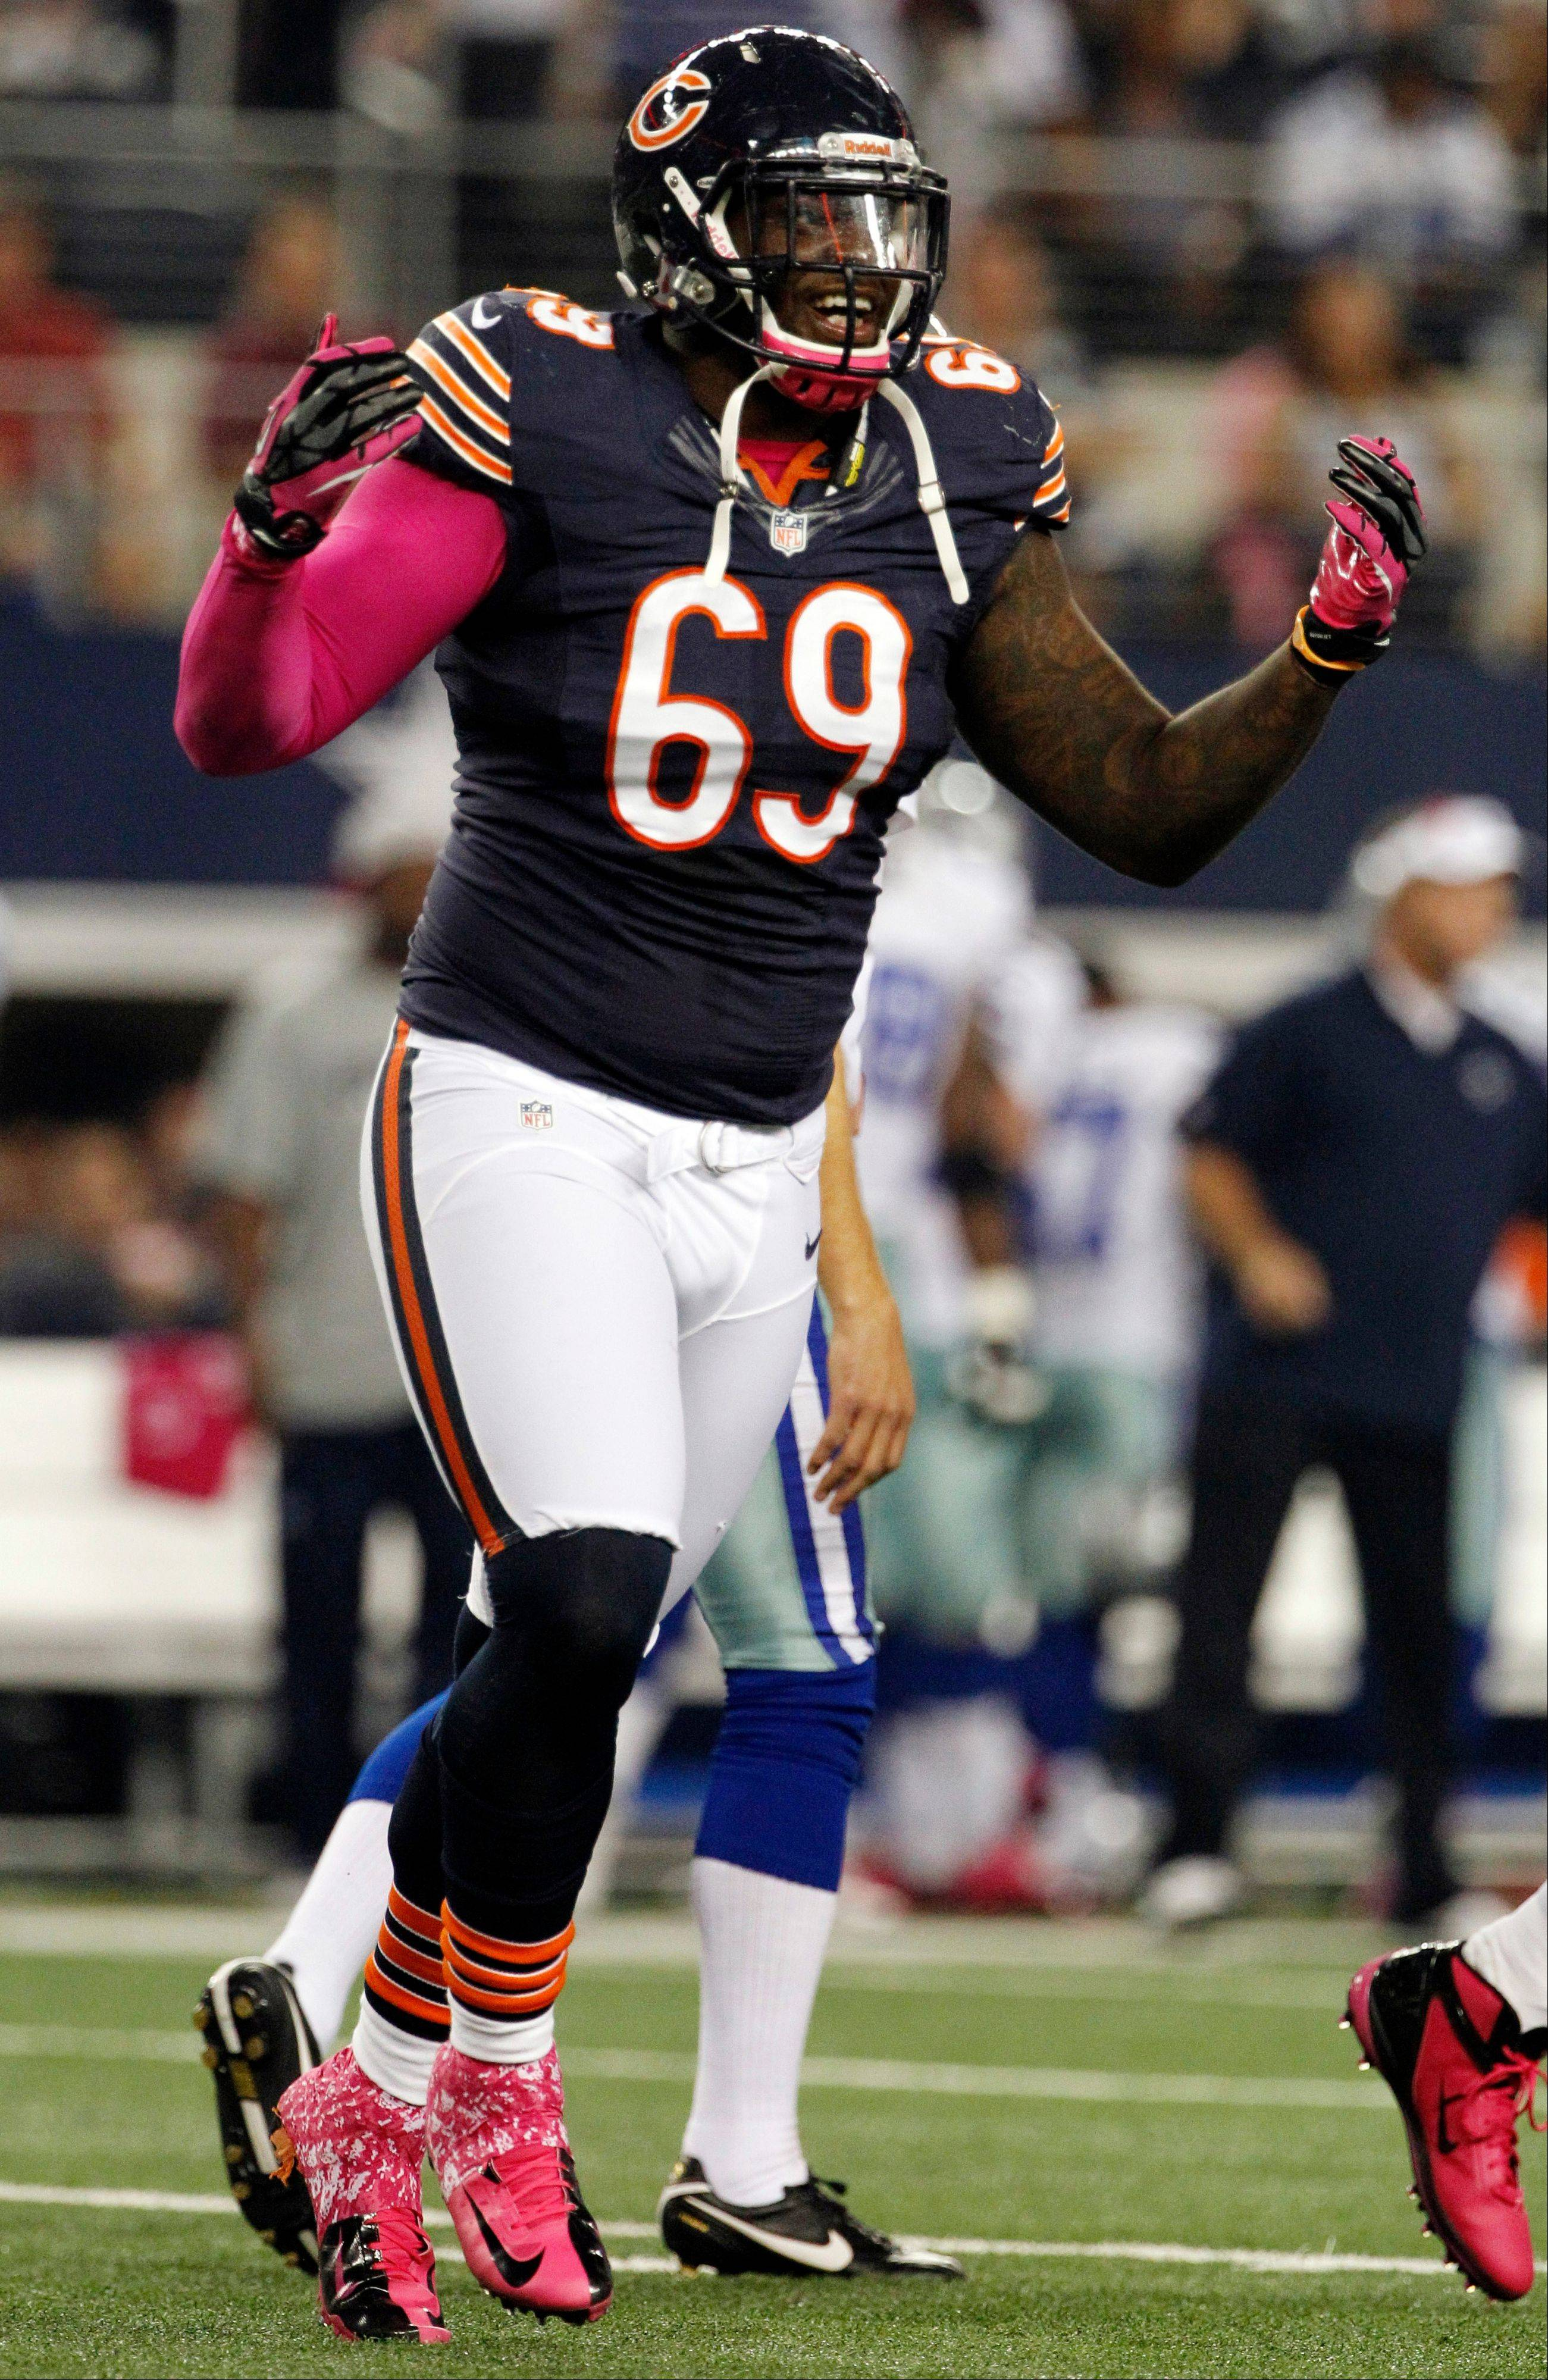 Chicago Bears defensive tackle Henry Melton, shown here celebrating a sack in a game last year against the Dallas Cowboys, was arrested early Sunday morning after an altercation at a suburban Dallas bar. Police said Melton, who is out for the season with a knee injury, was charged with assault and public intoxication.